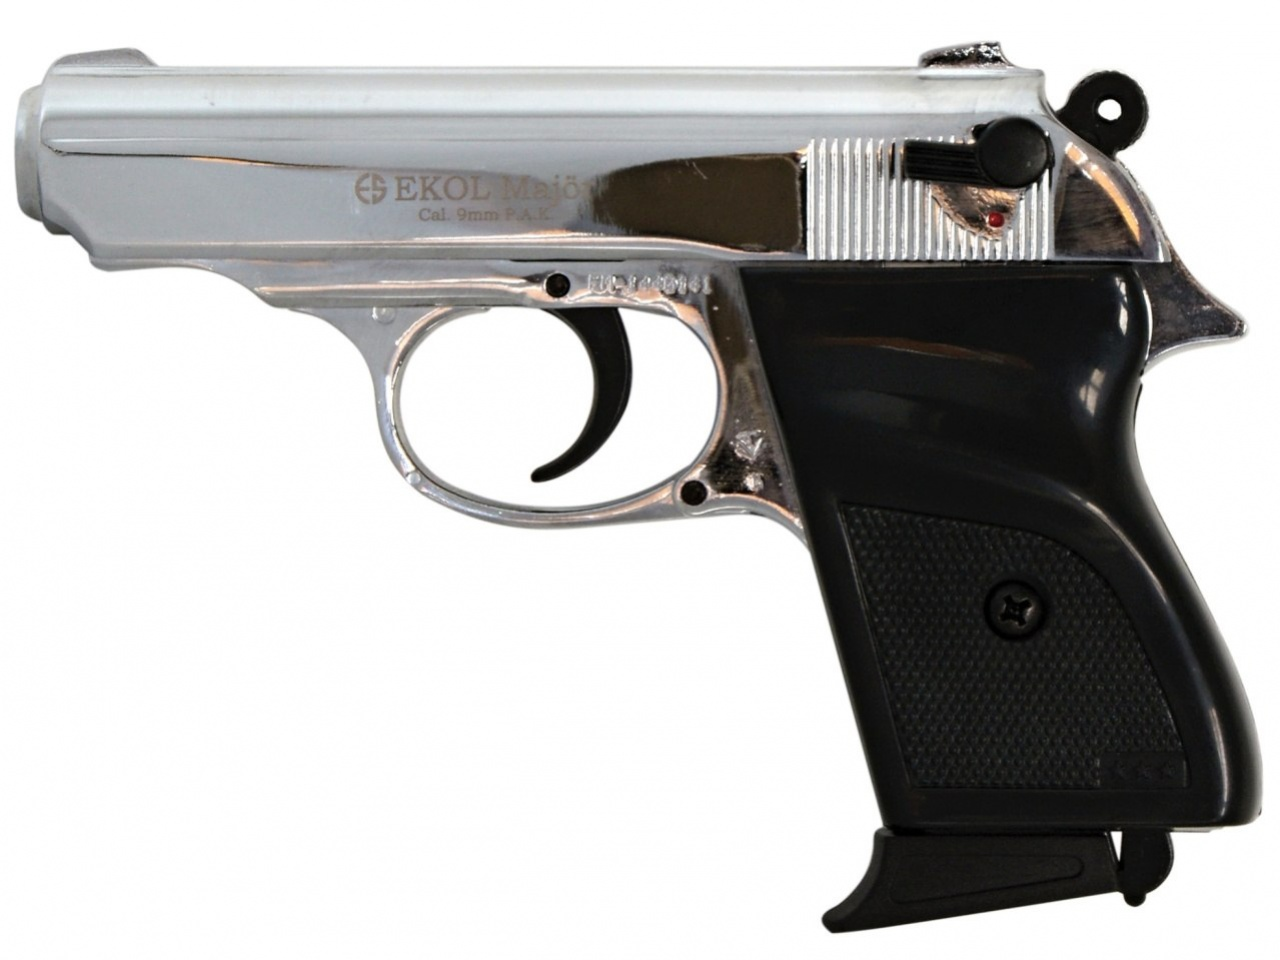 Pistolet gazowy Ekol Major chrom kal.9mm